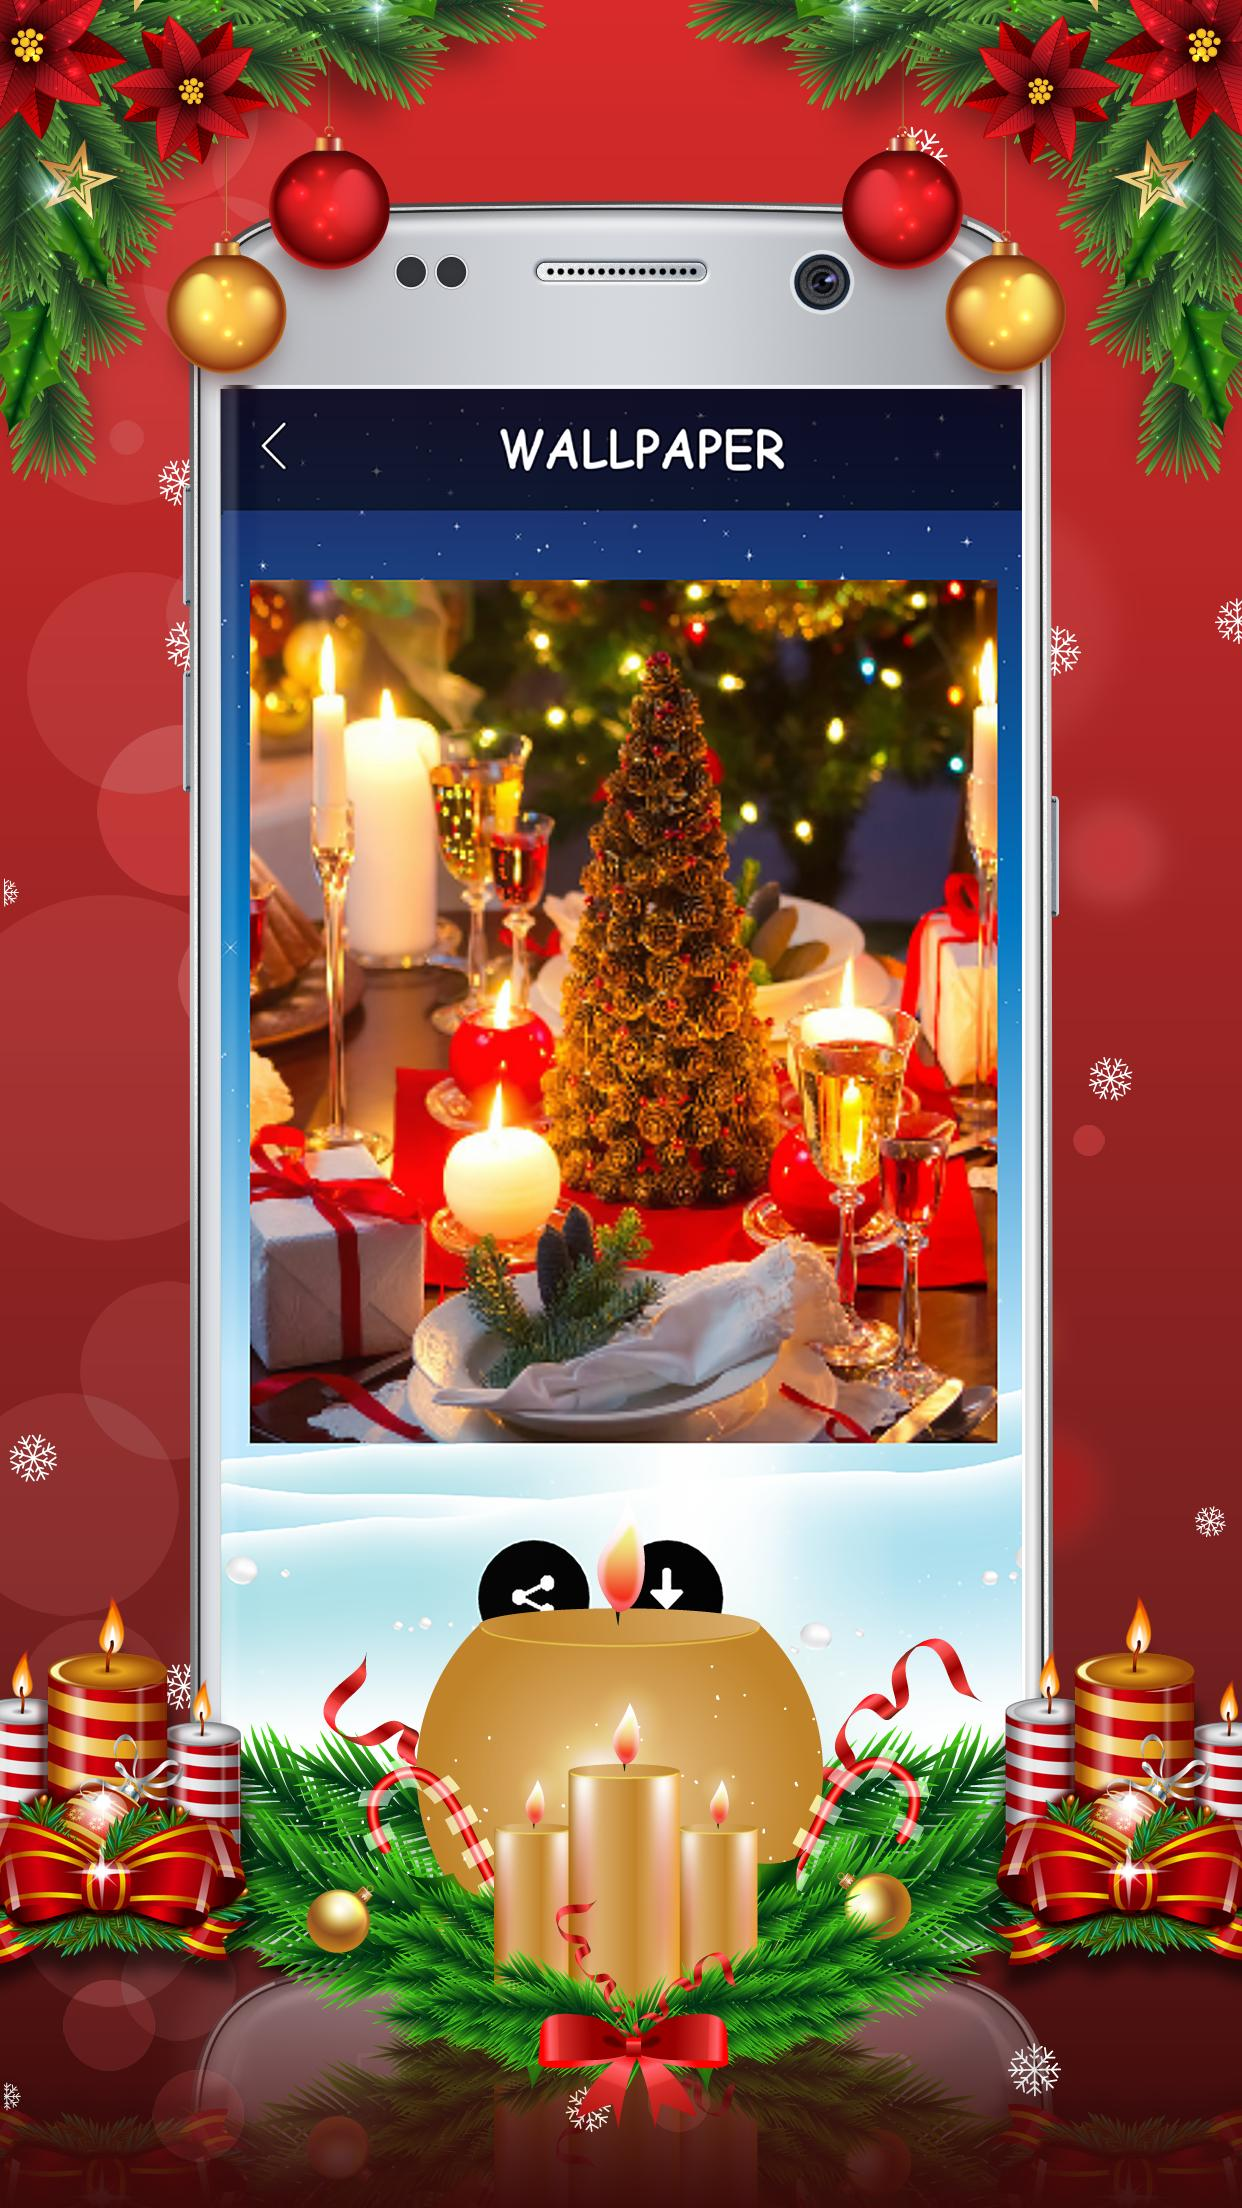 Christmas Candle Wallpapers 2017 For Android Apk Download